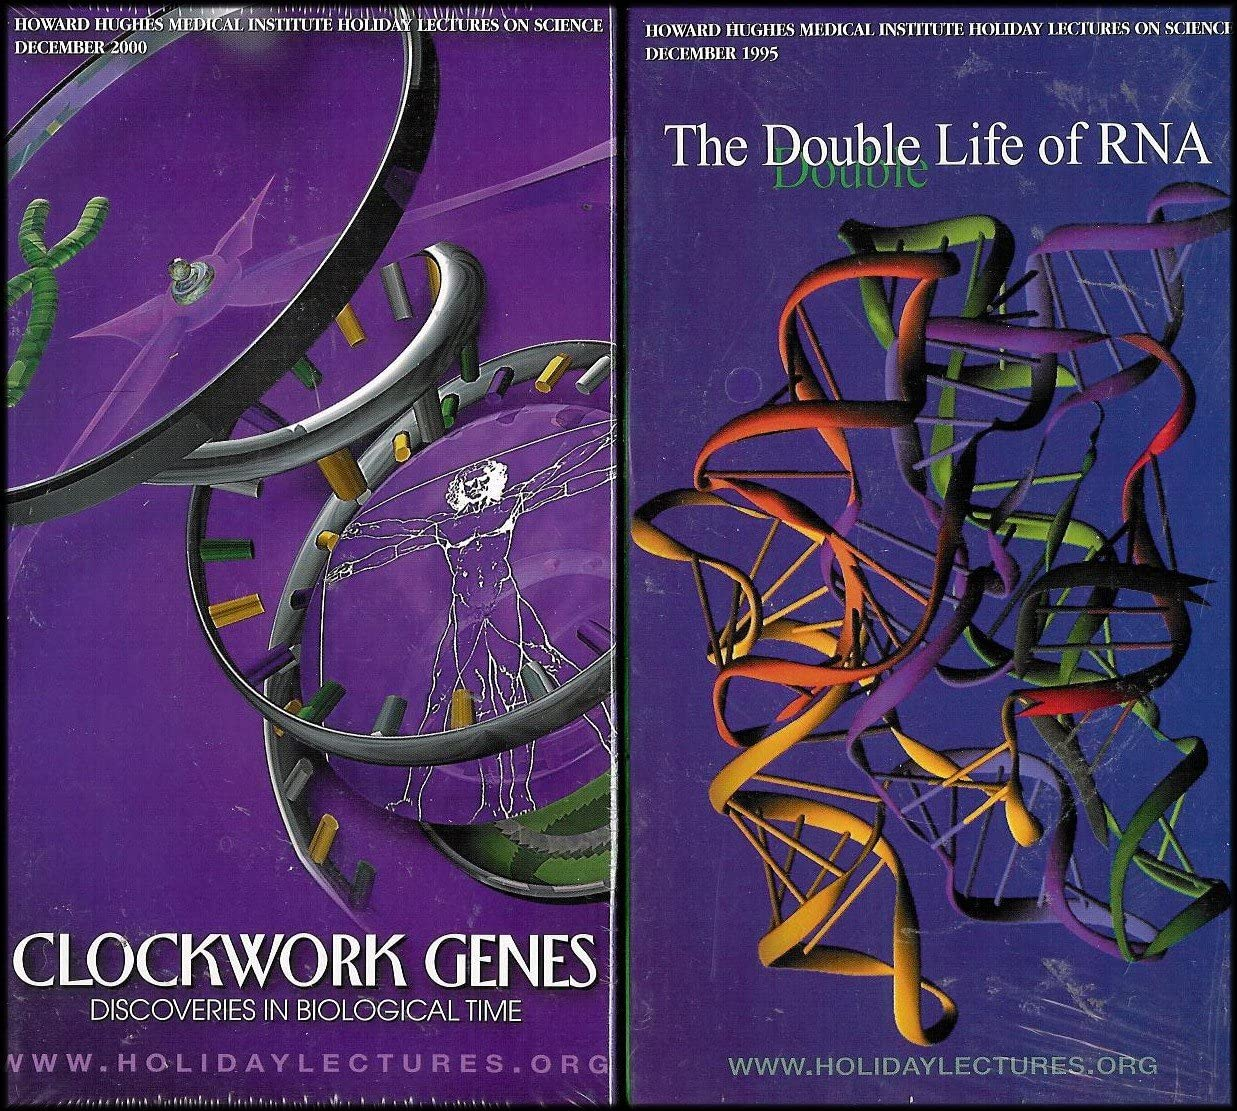 Howard Hughes Medical Institute Lecture Science Series: The Double Life of RNA, Clockwork Genes, Scanning Lifes Matrix, Of Hearts and Hypertension [8 VHS Videos]